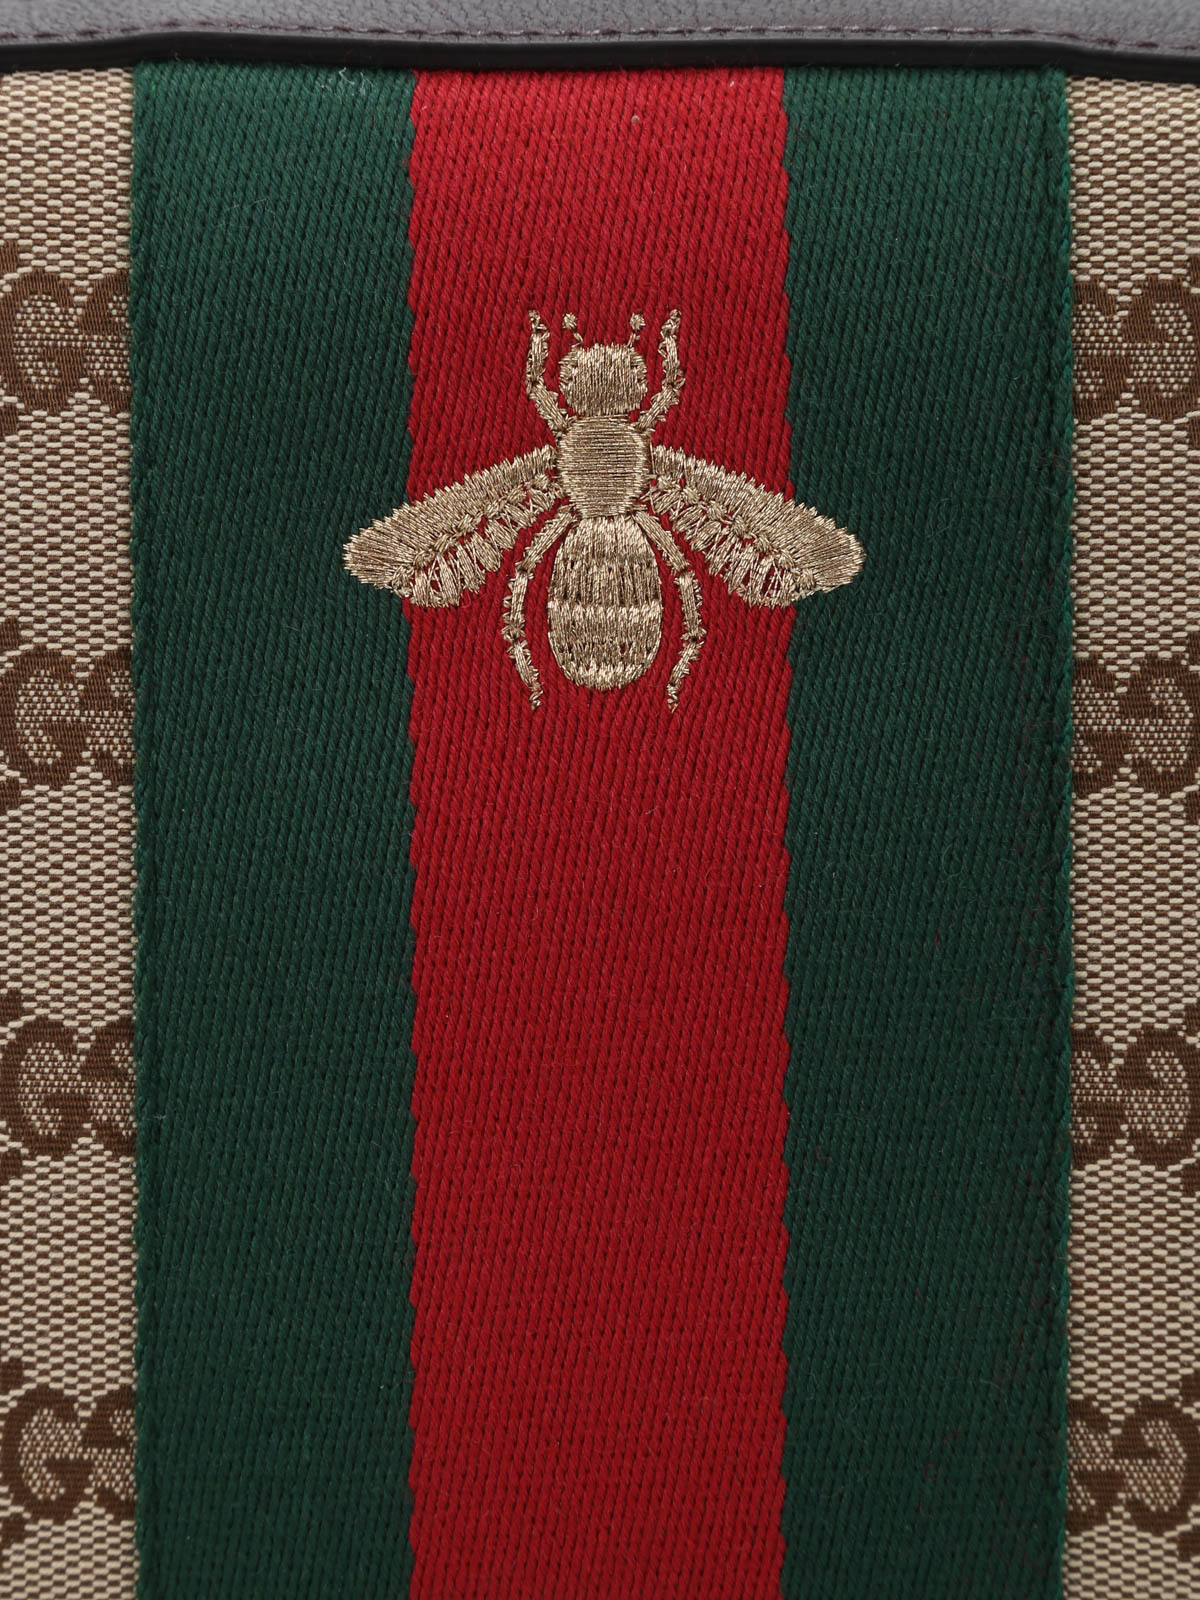 Gucci Bee Embroidery Gg Canvas Bag Cross Body Bags